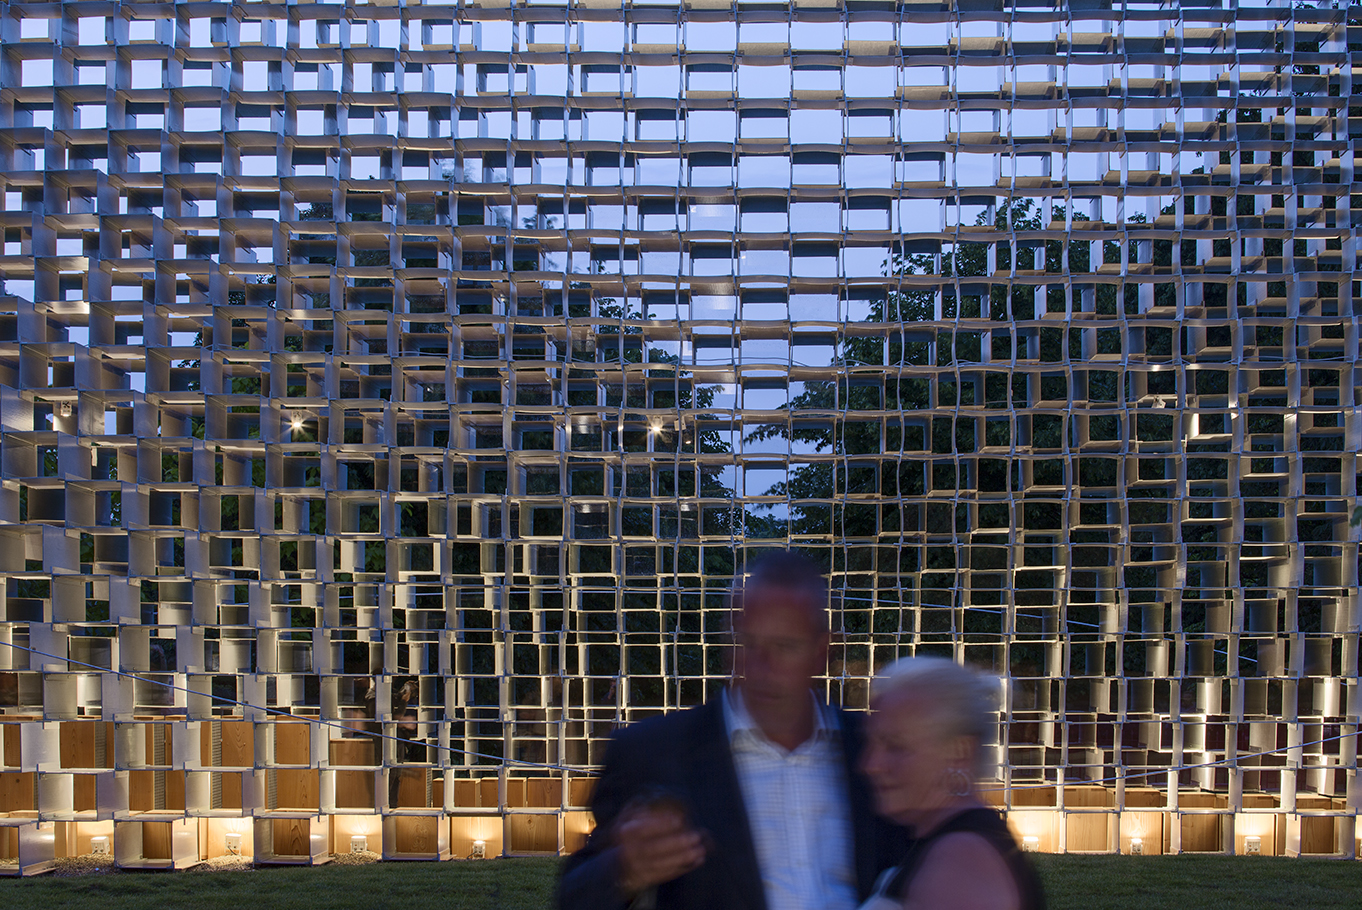 photo-boegly-grazia-2016-serpentine pavilion-london- LowDef-57